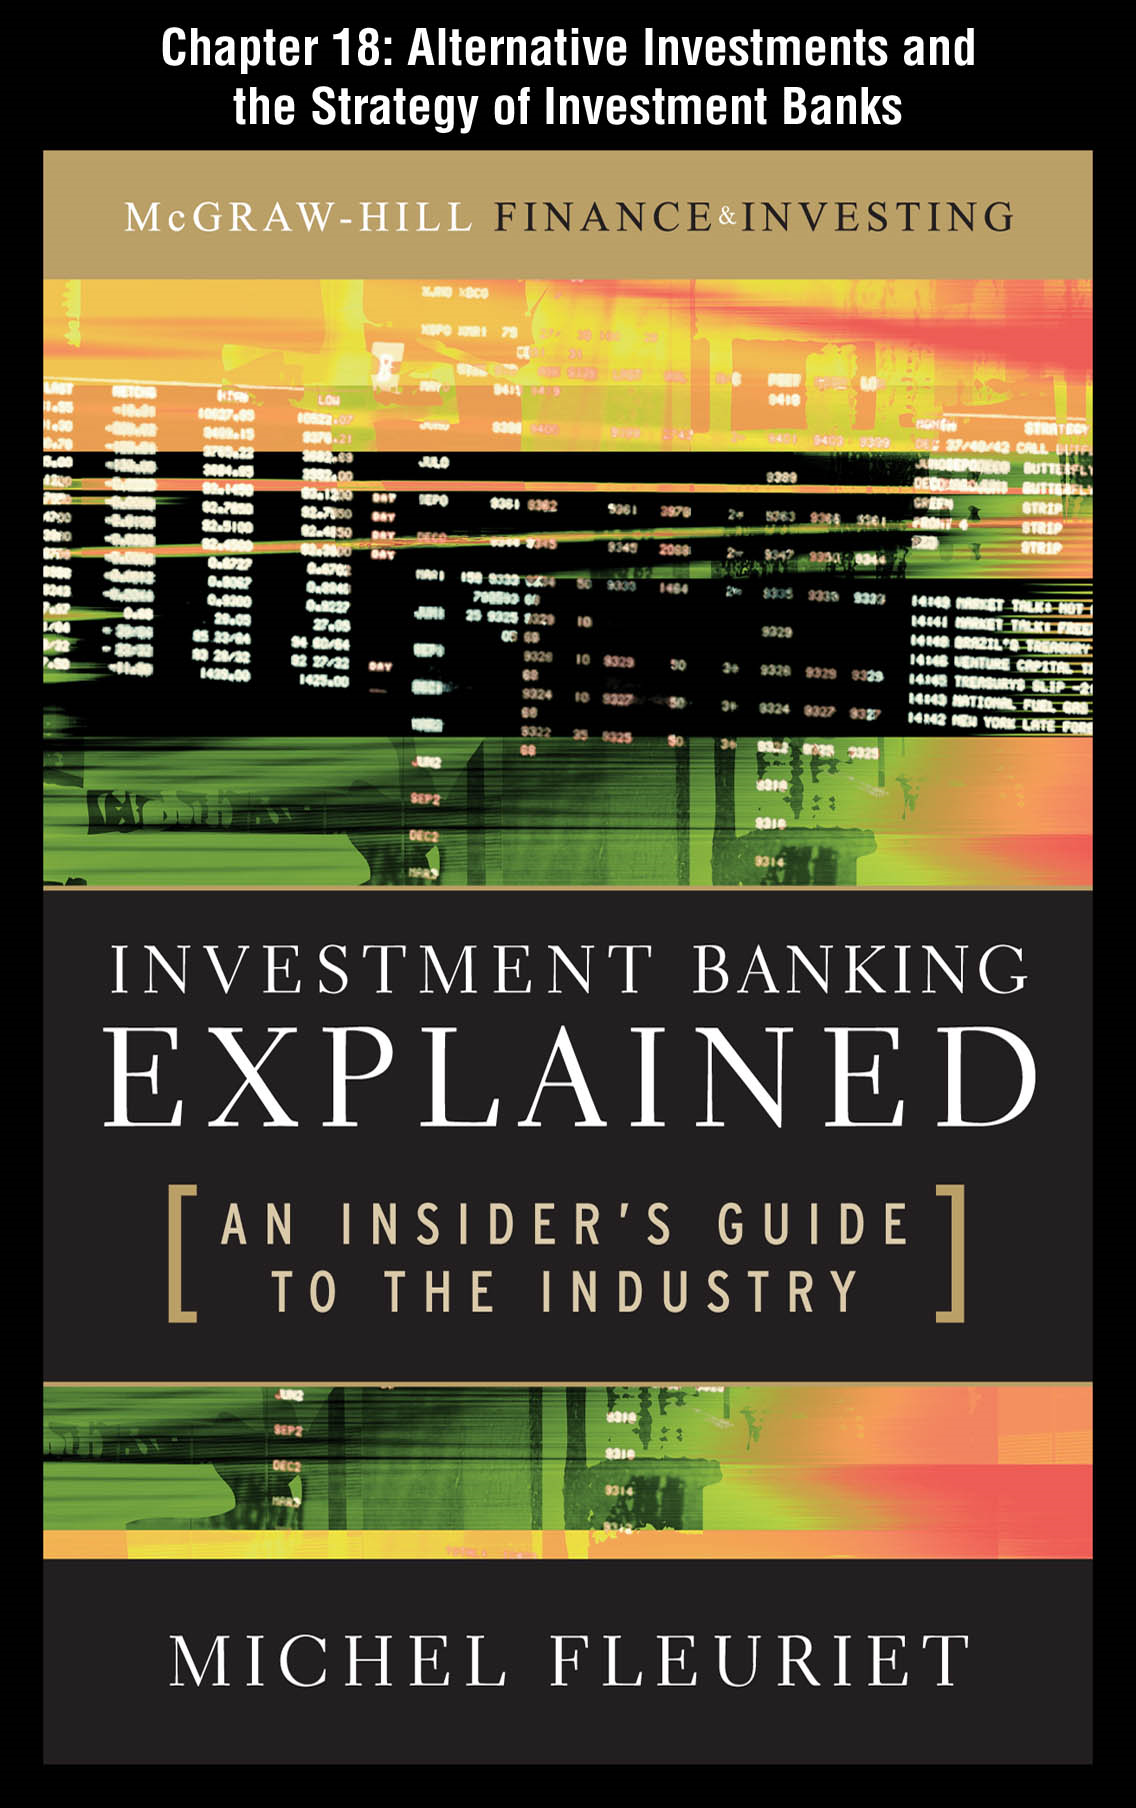 Investment Banking Explained, Chapter 18 - Alternative Investments and the Strategy of Investment Banks By: Michel Fleuriet